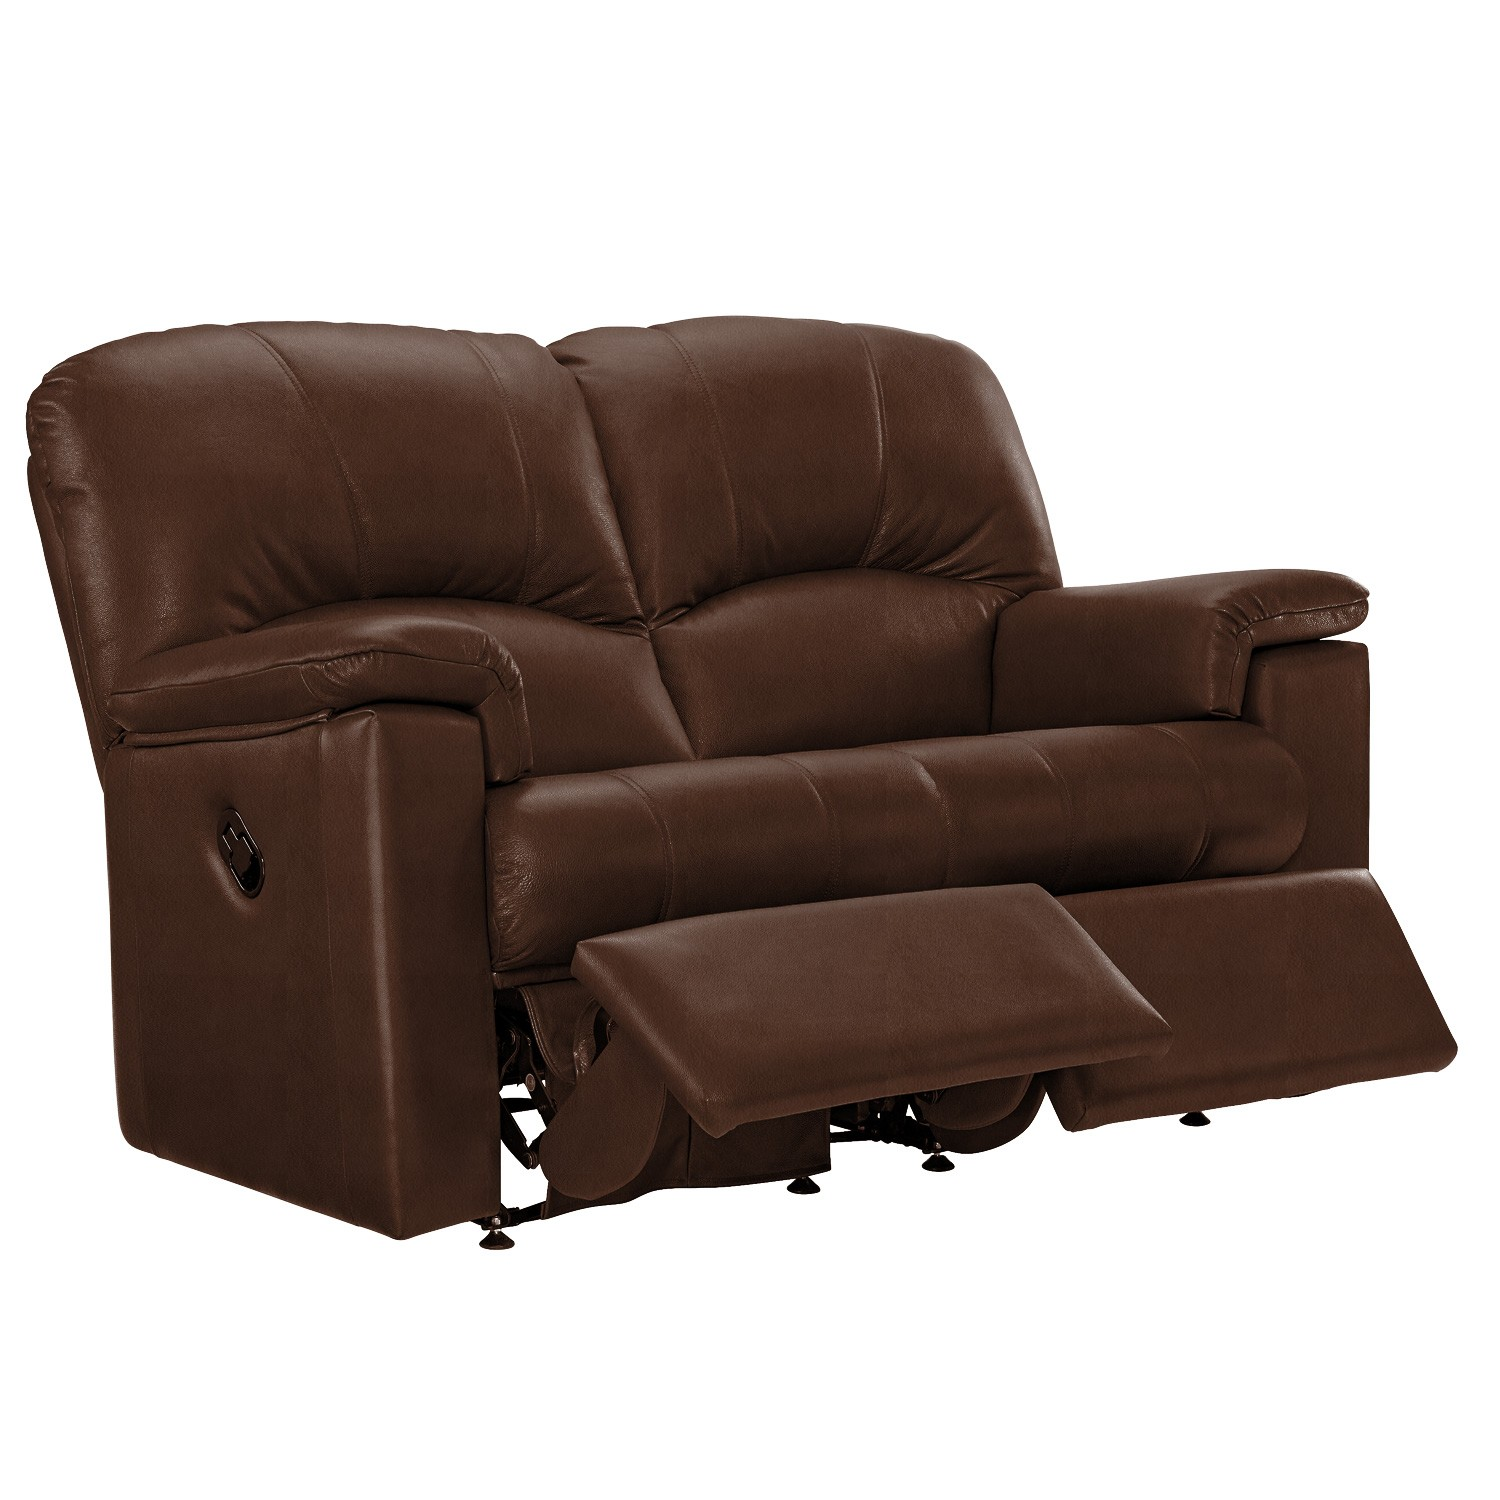 G Plan Chloe 2 Seater Left Manual Recliner Leather Sofa Le